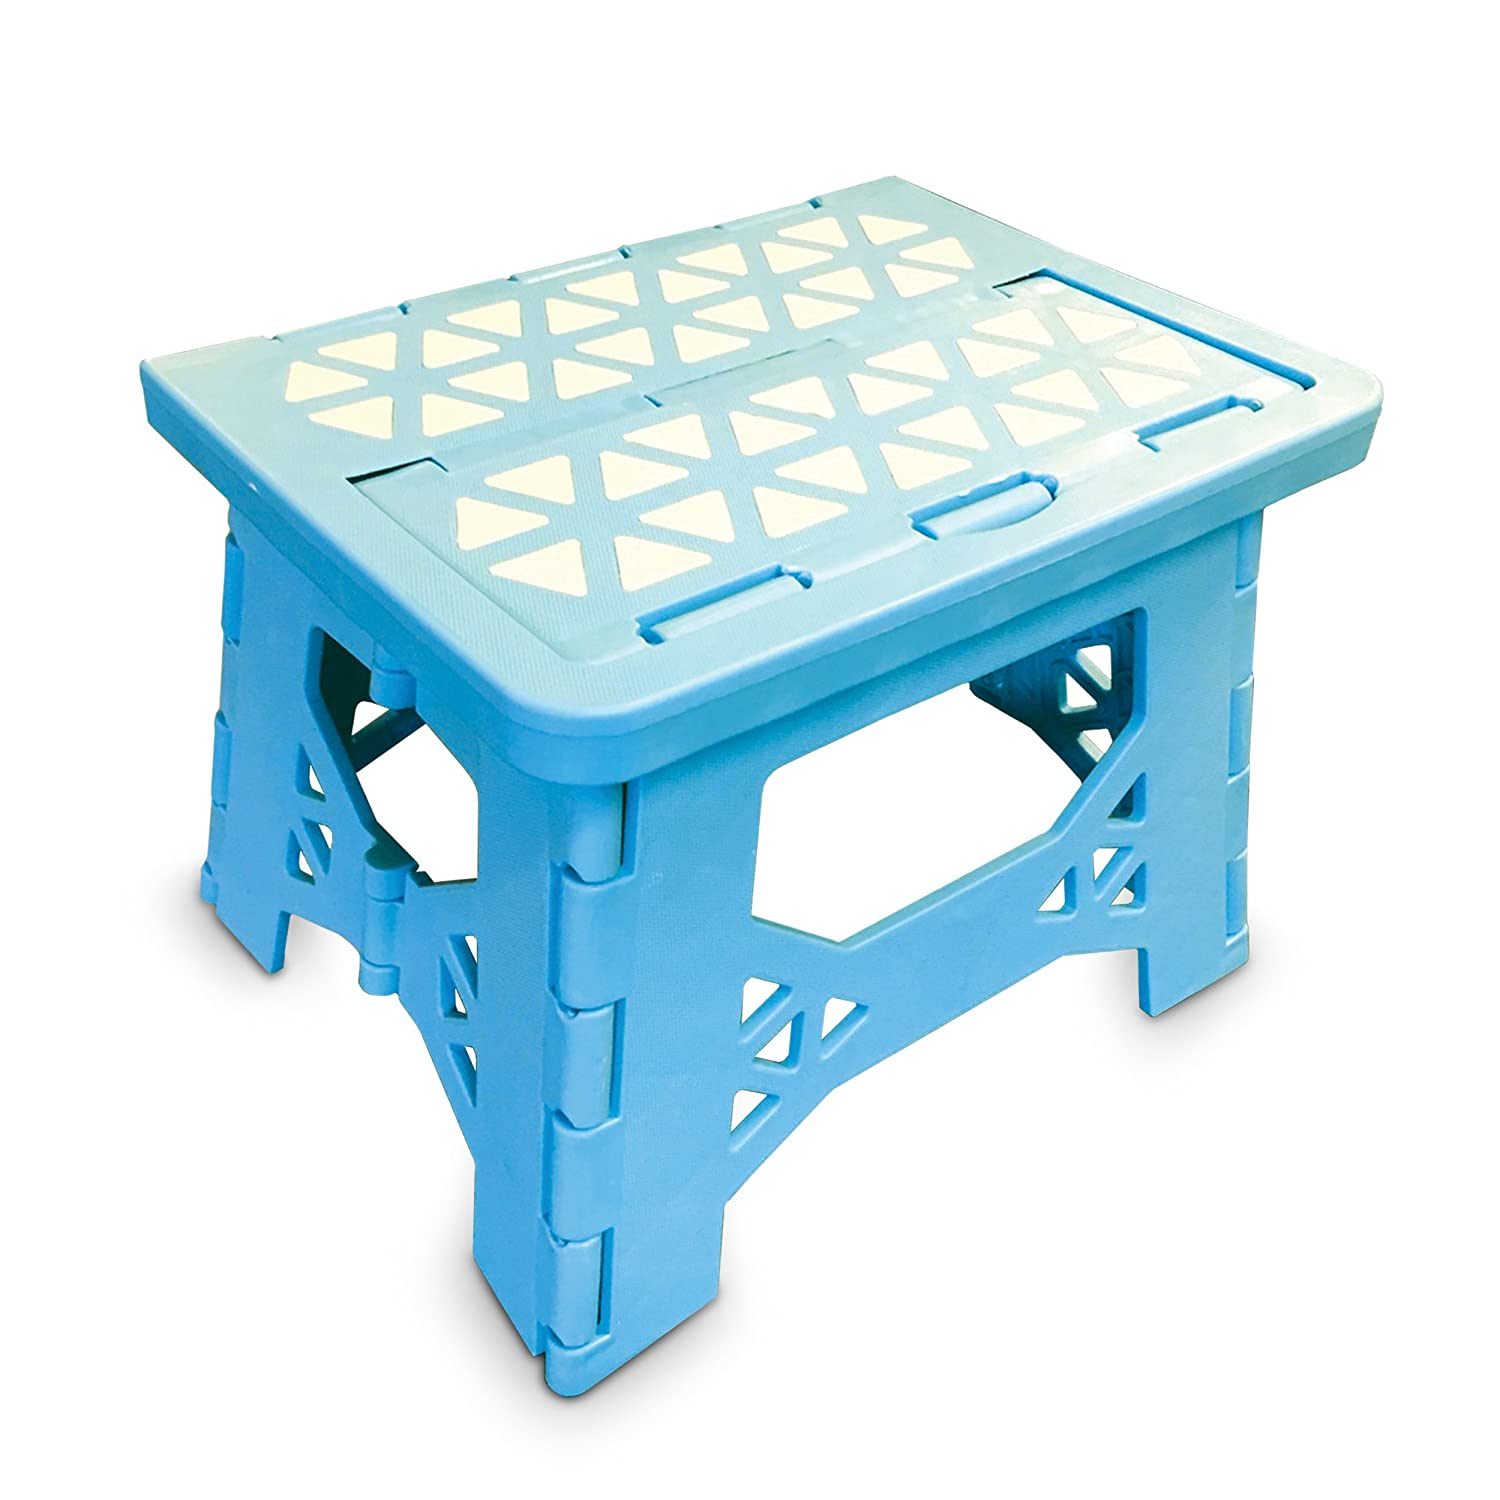 Bula Baby Folding Step Stool For Kids - New Safe Locking System and Non Slip Feet Grip - Blue